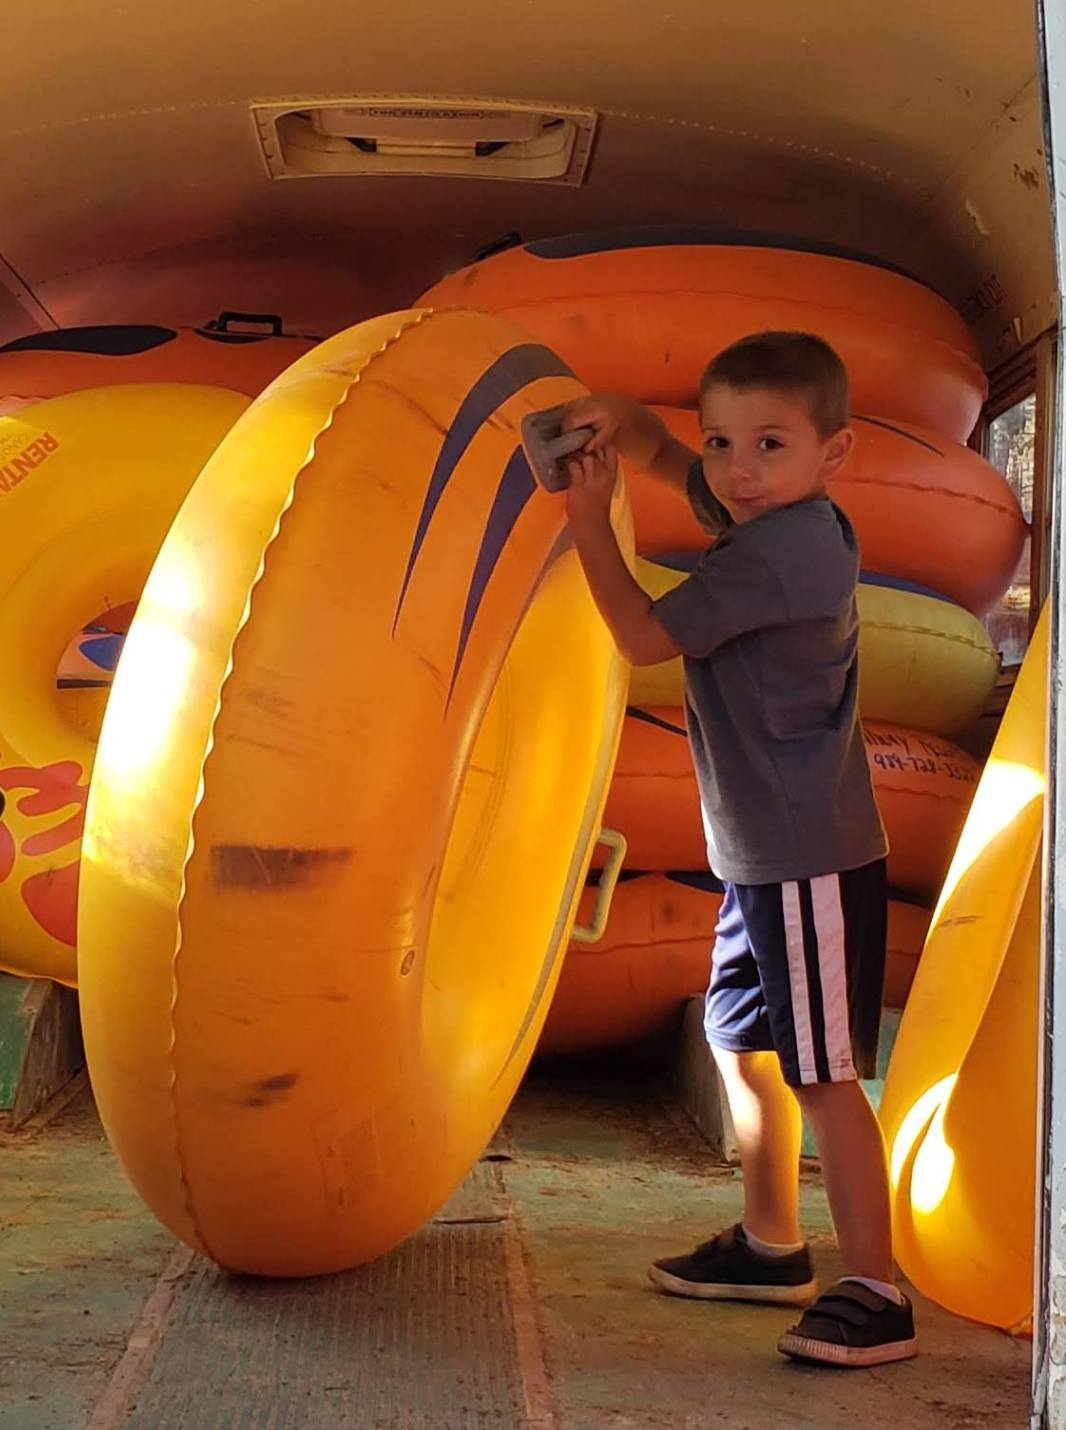 Family Vacations Up North: Rollway Resort in Hale, Michigan